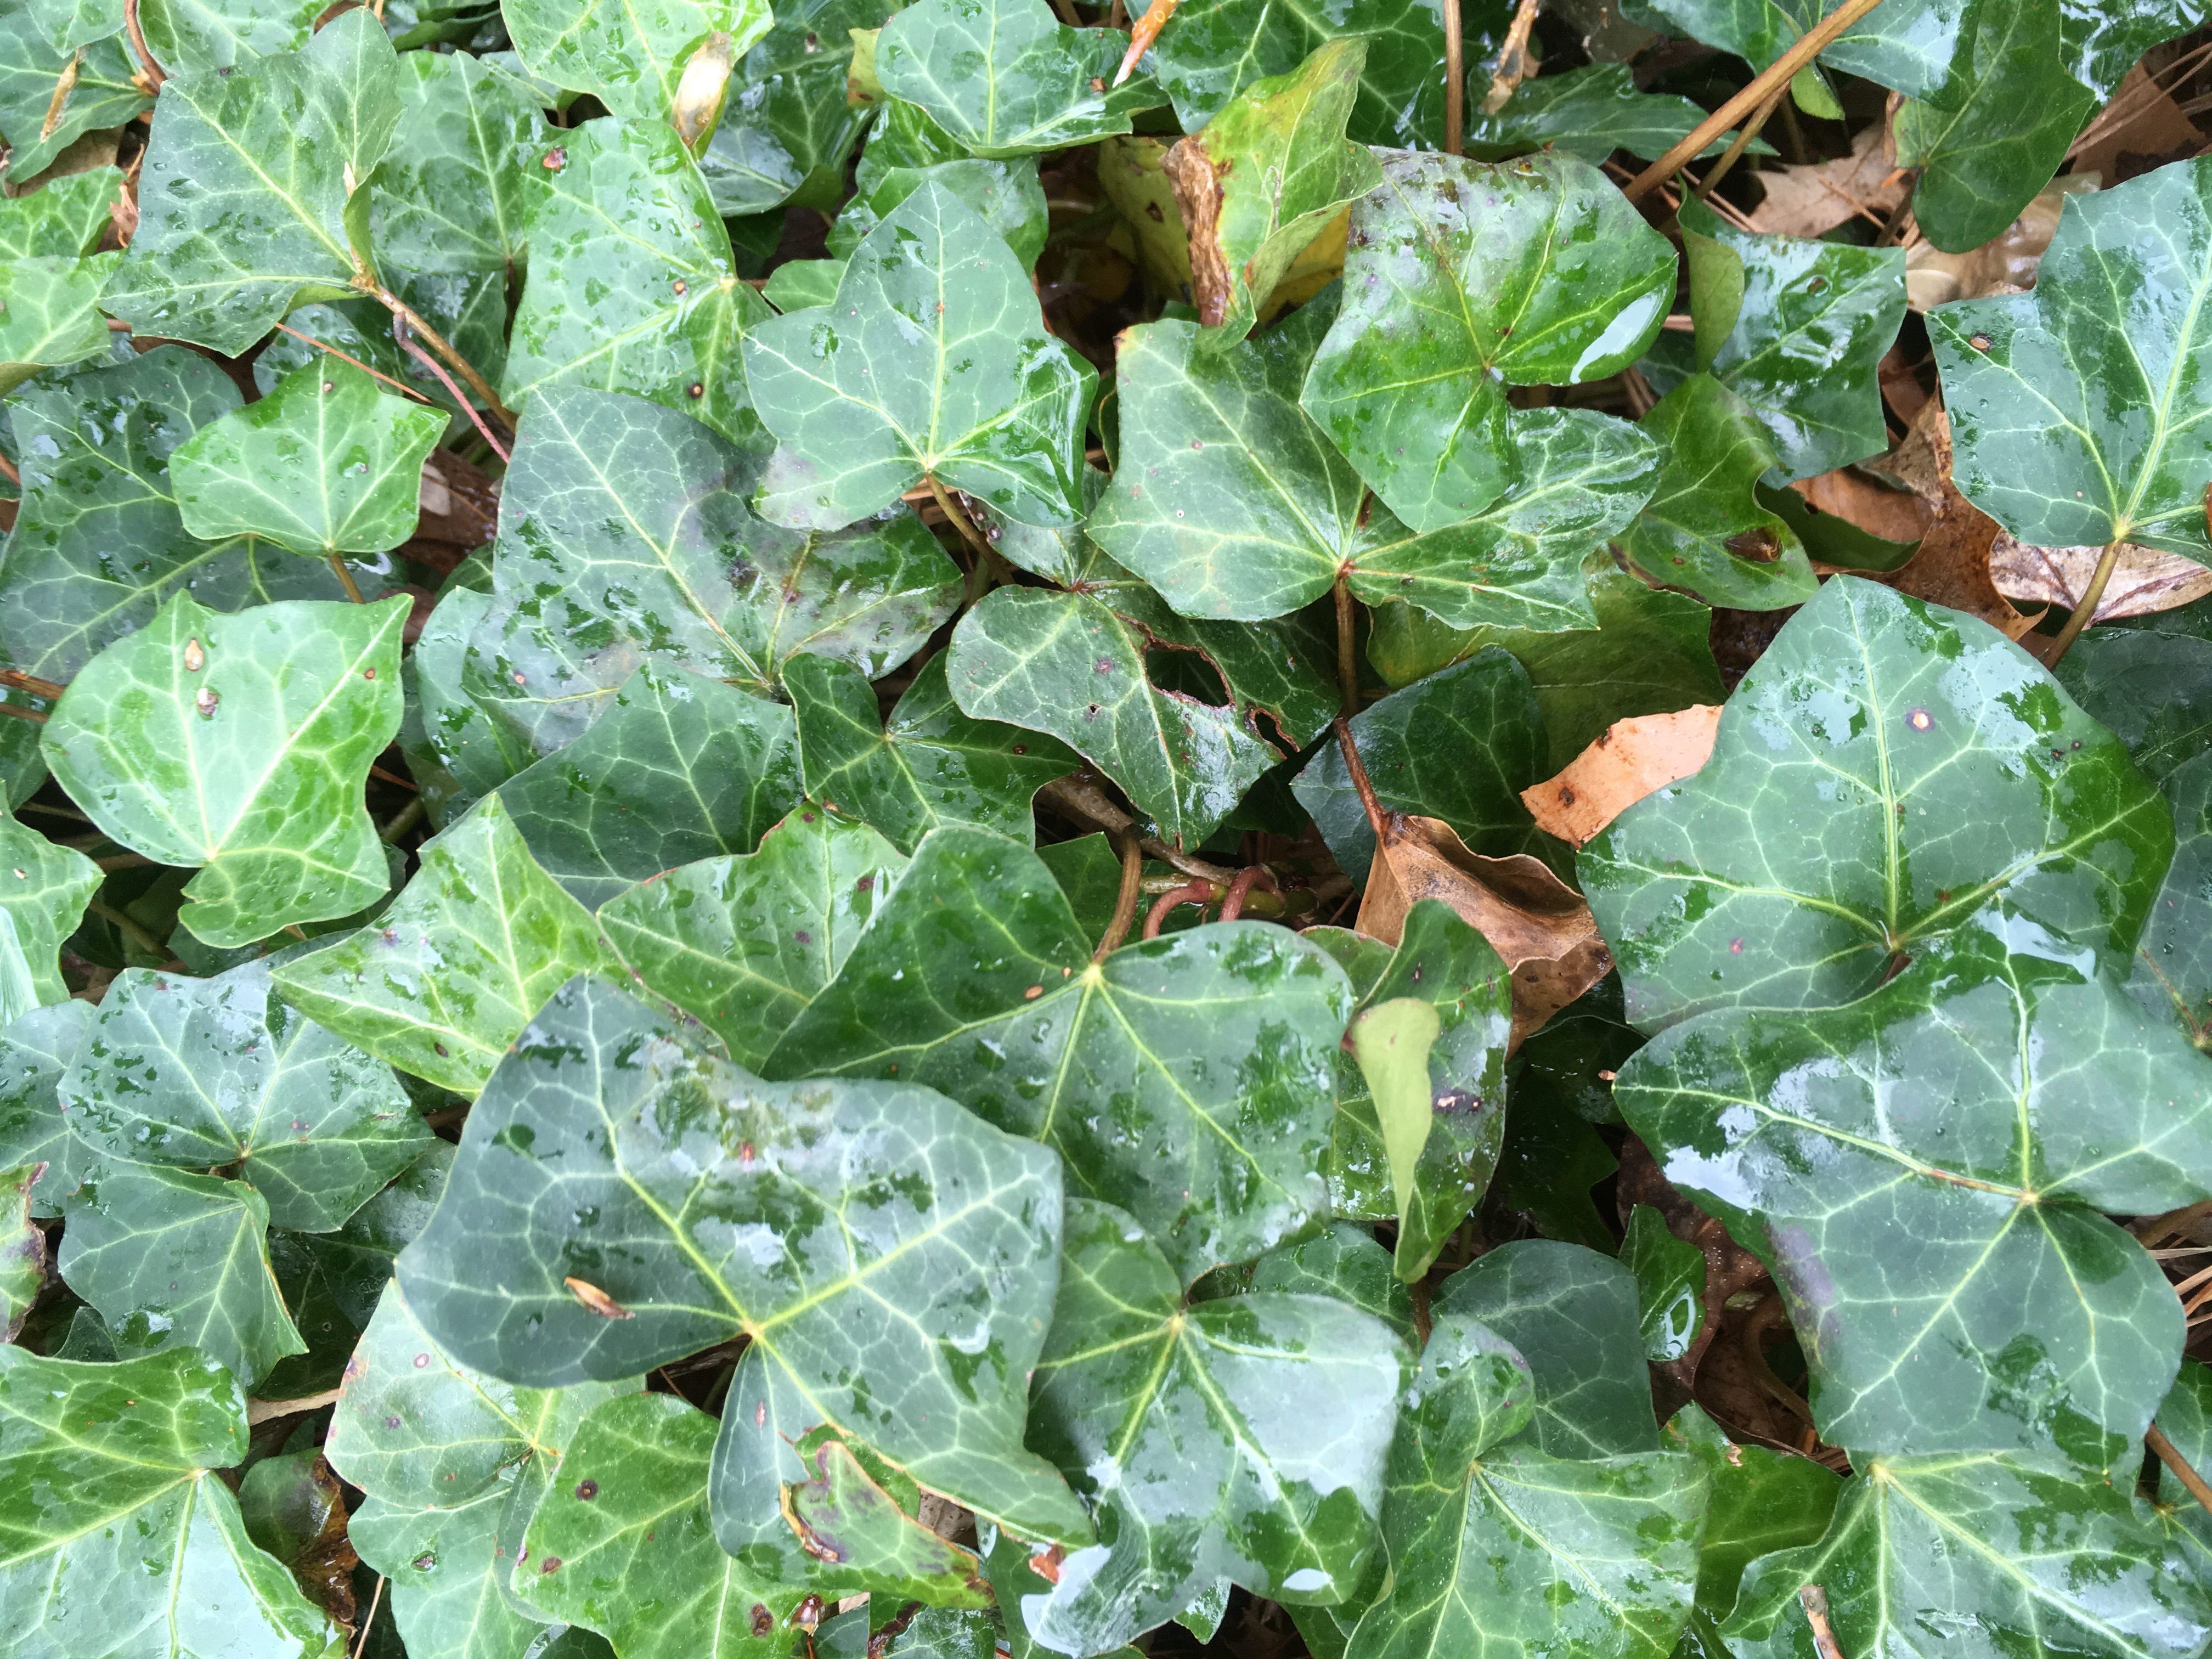 English Ivy- Friend or Foe? | North Carolina Cooperative ... on common names of indoor plants, common household plants, kinds of ivy, common indoor houseplants, english ivy, common ground cover ivy, plectranthus swedish ivy, common houseplants care of,